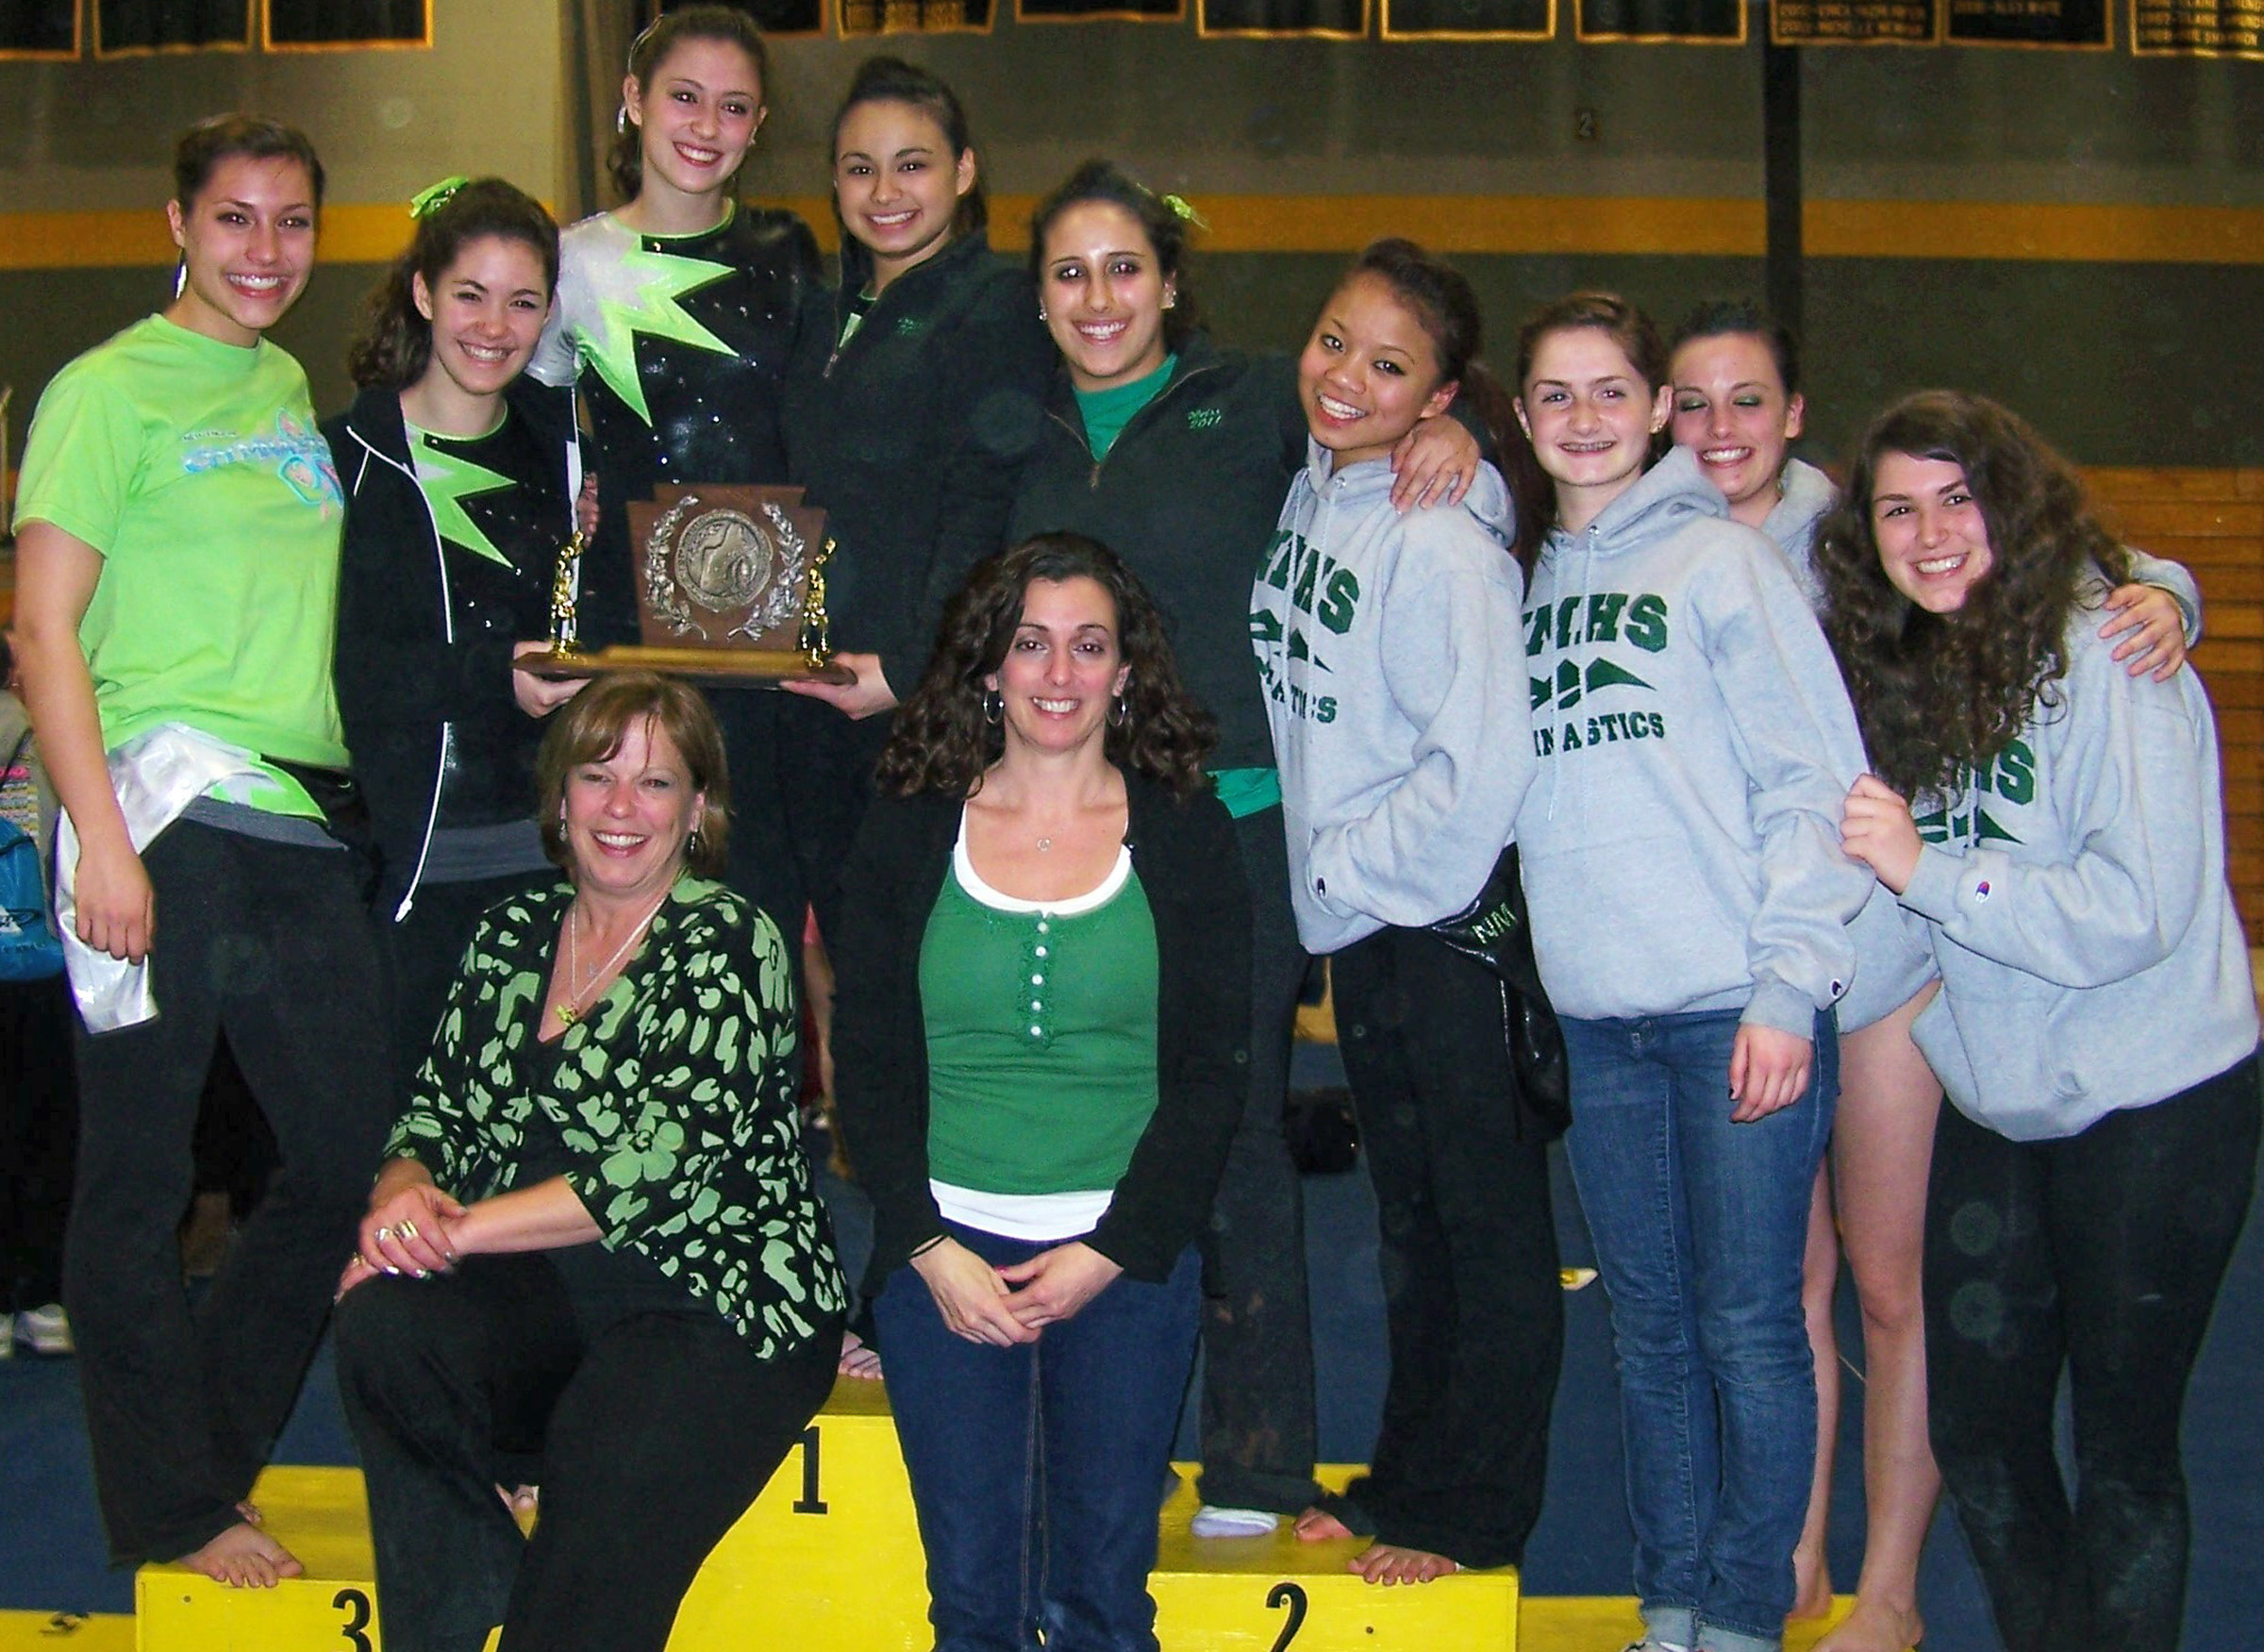 Green Wave gymnastics 2010 state open and New England champions